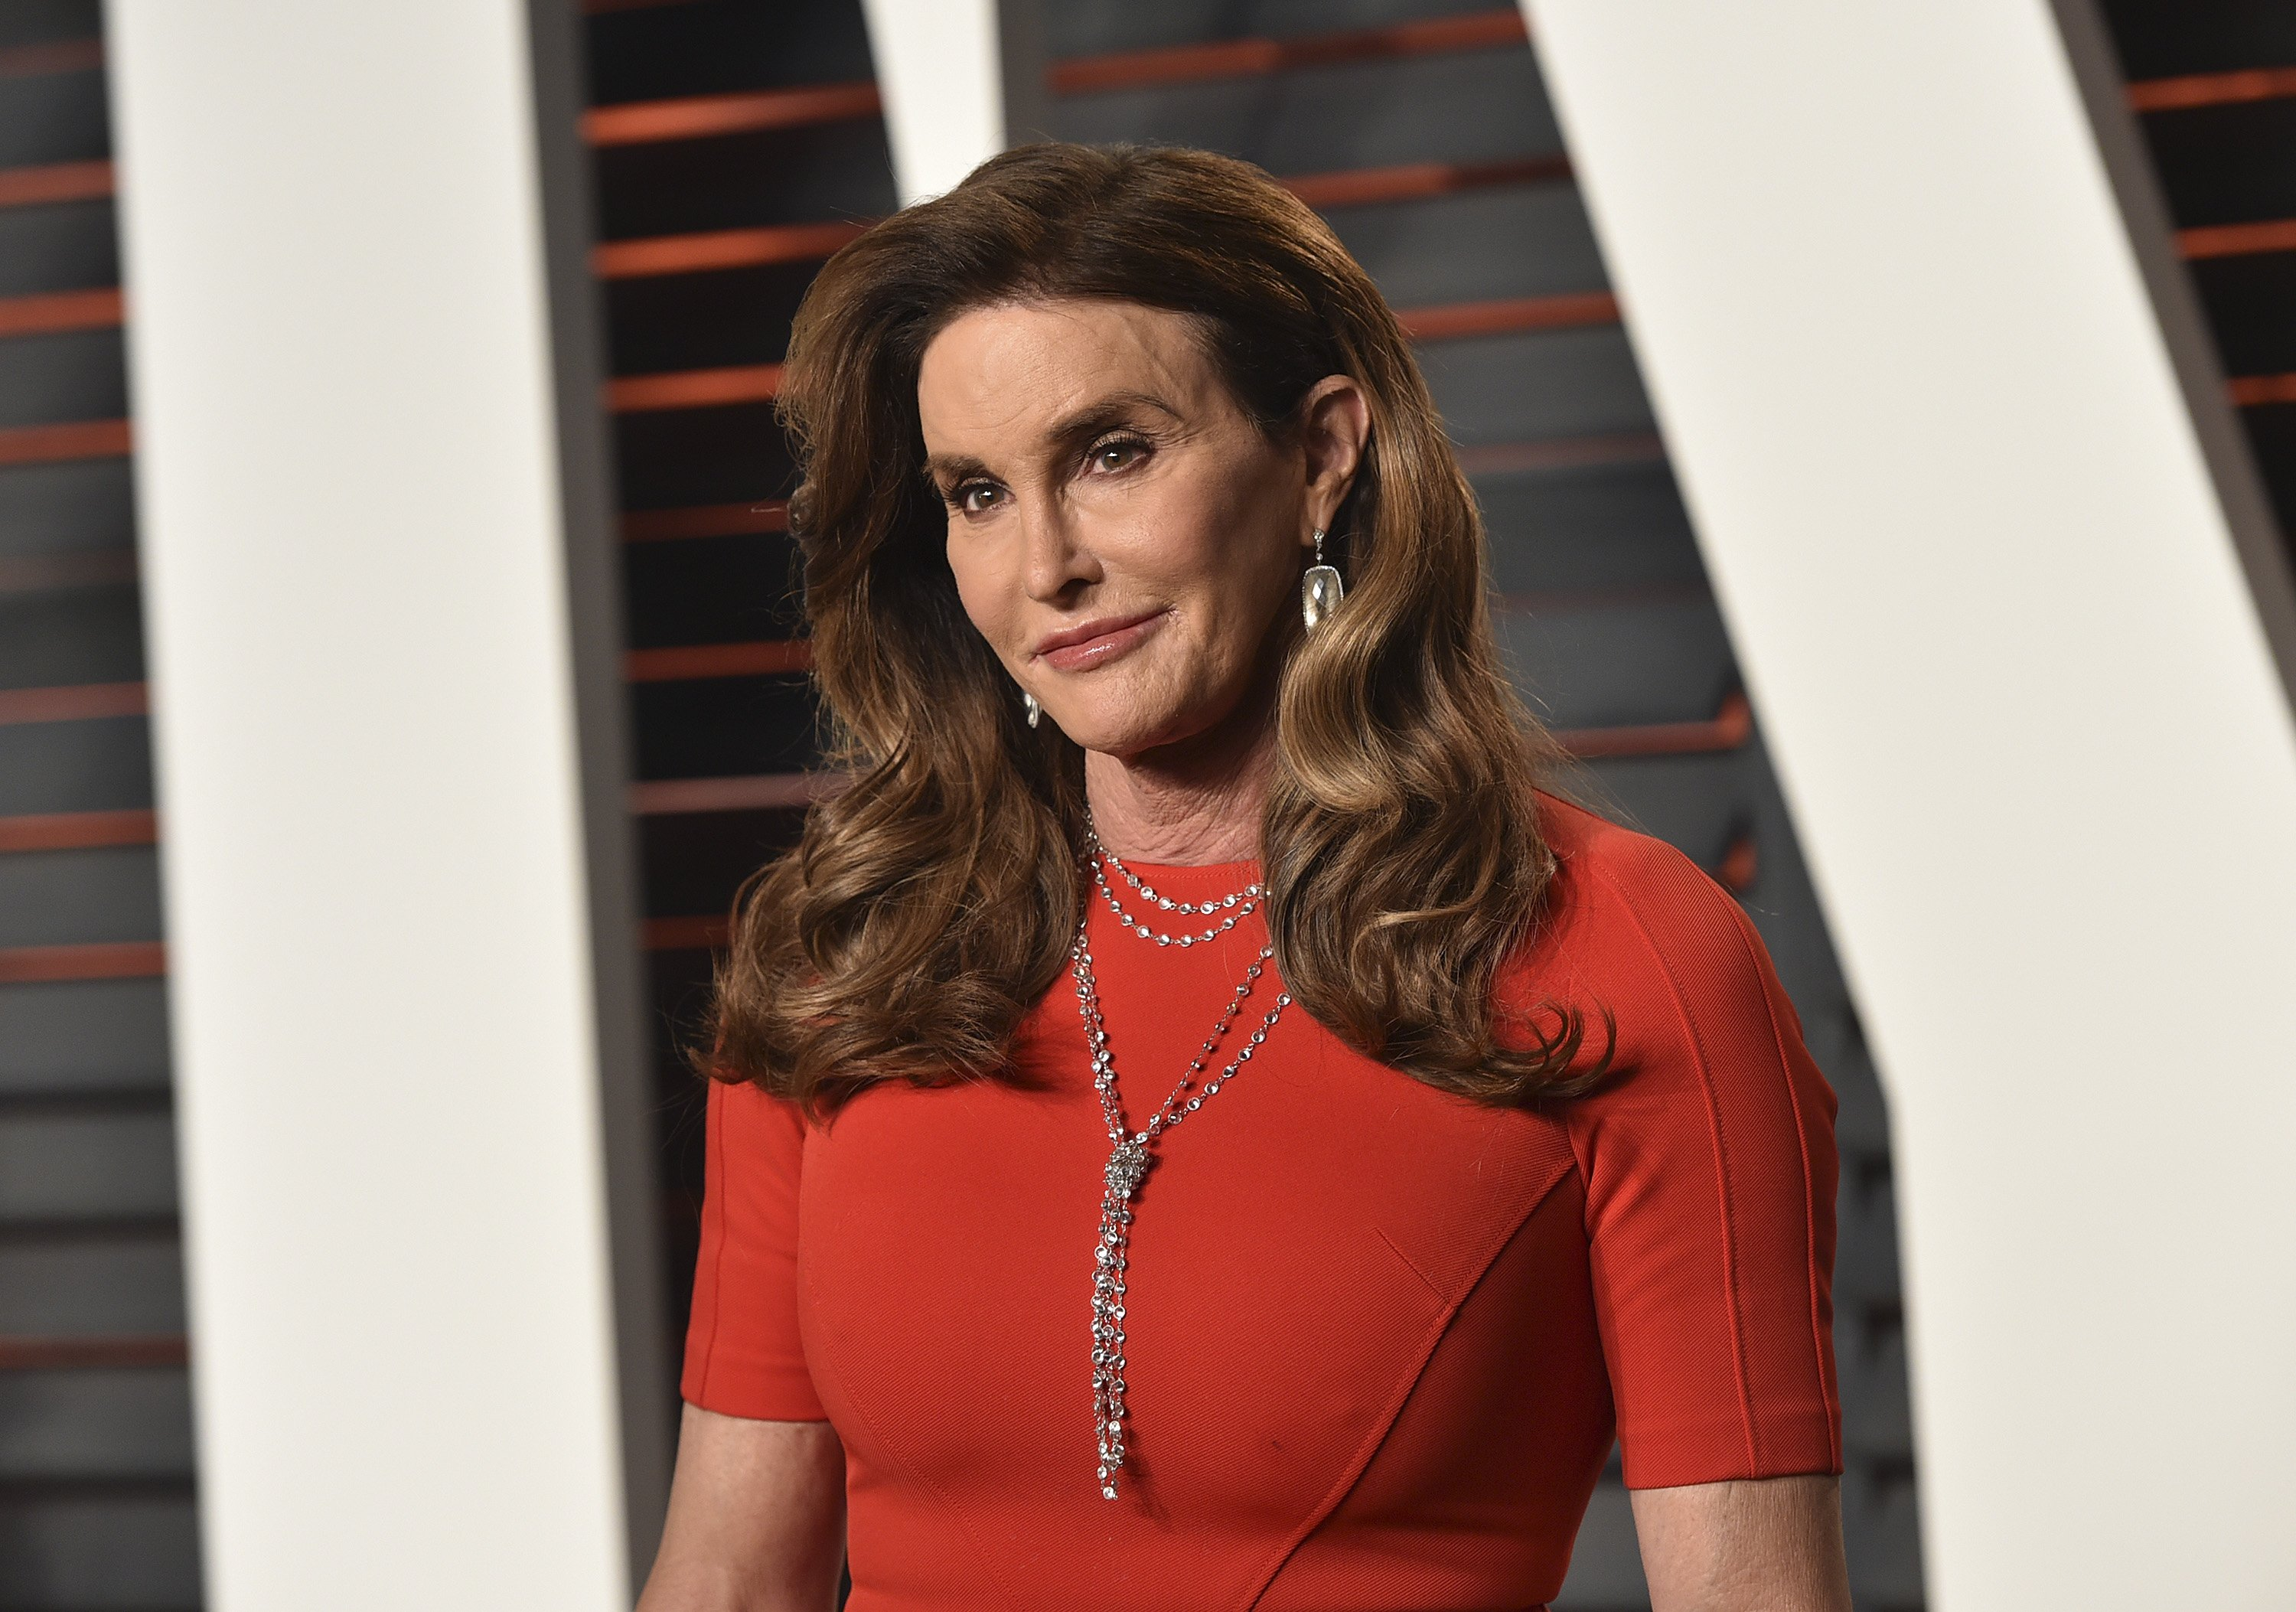 Caitlyn Jenner arrives at the 2016 Vanity Fair Oscar Party on February 28, 2016 | Photo: GettyImages